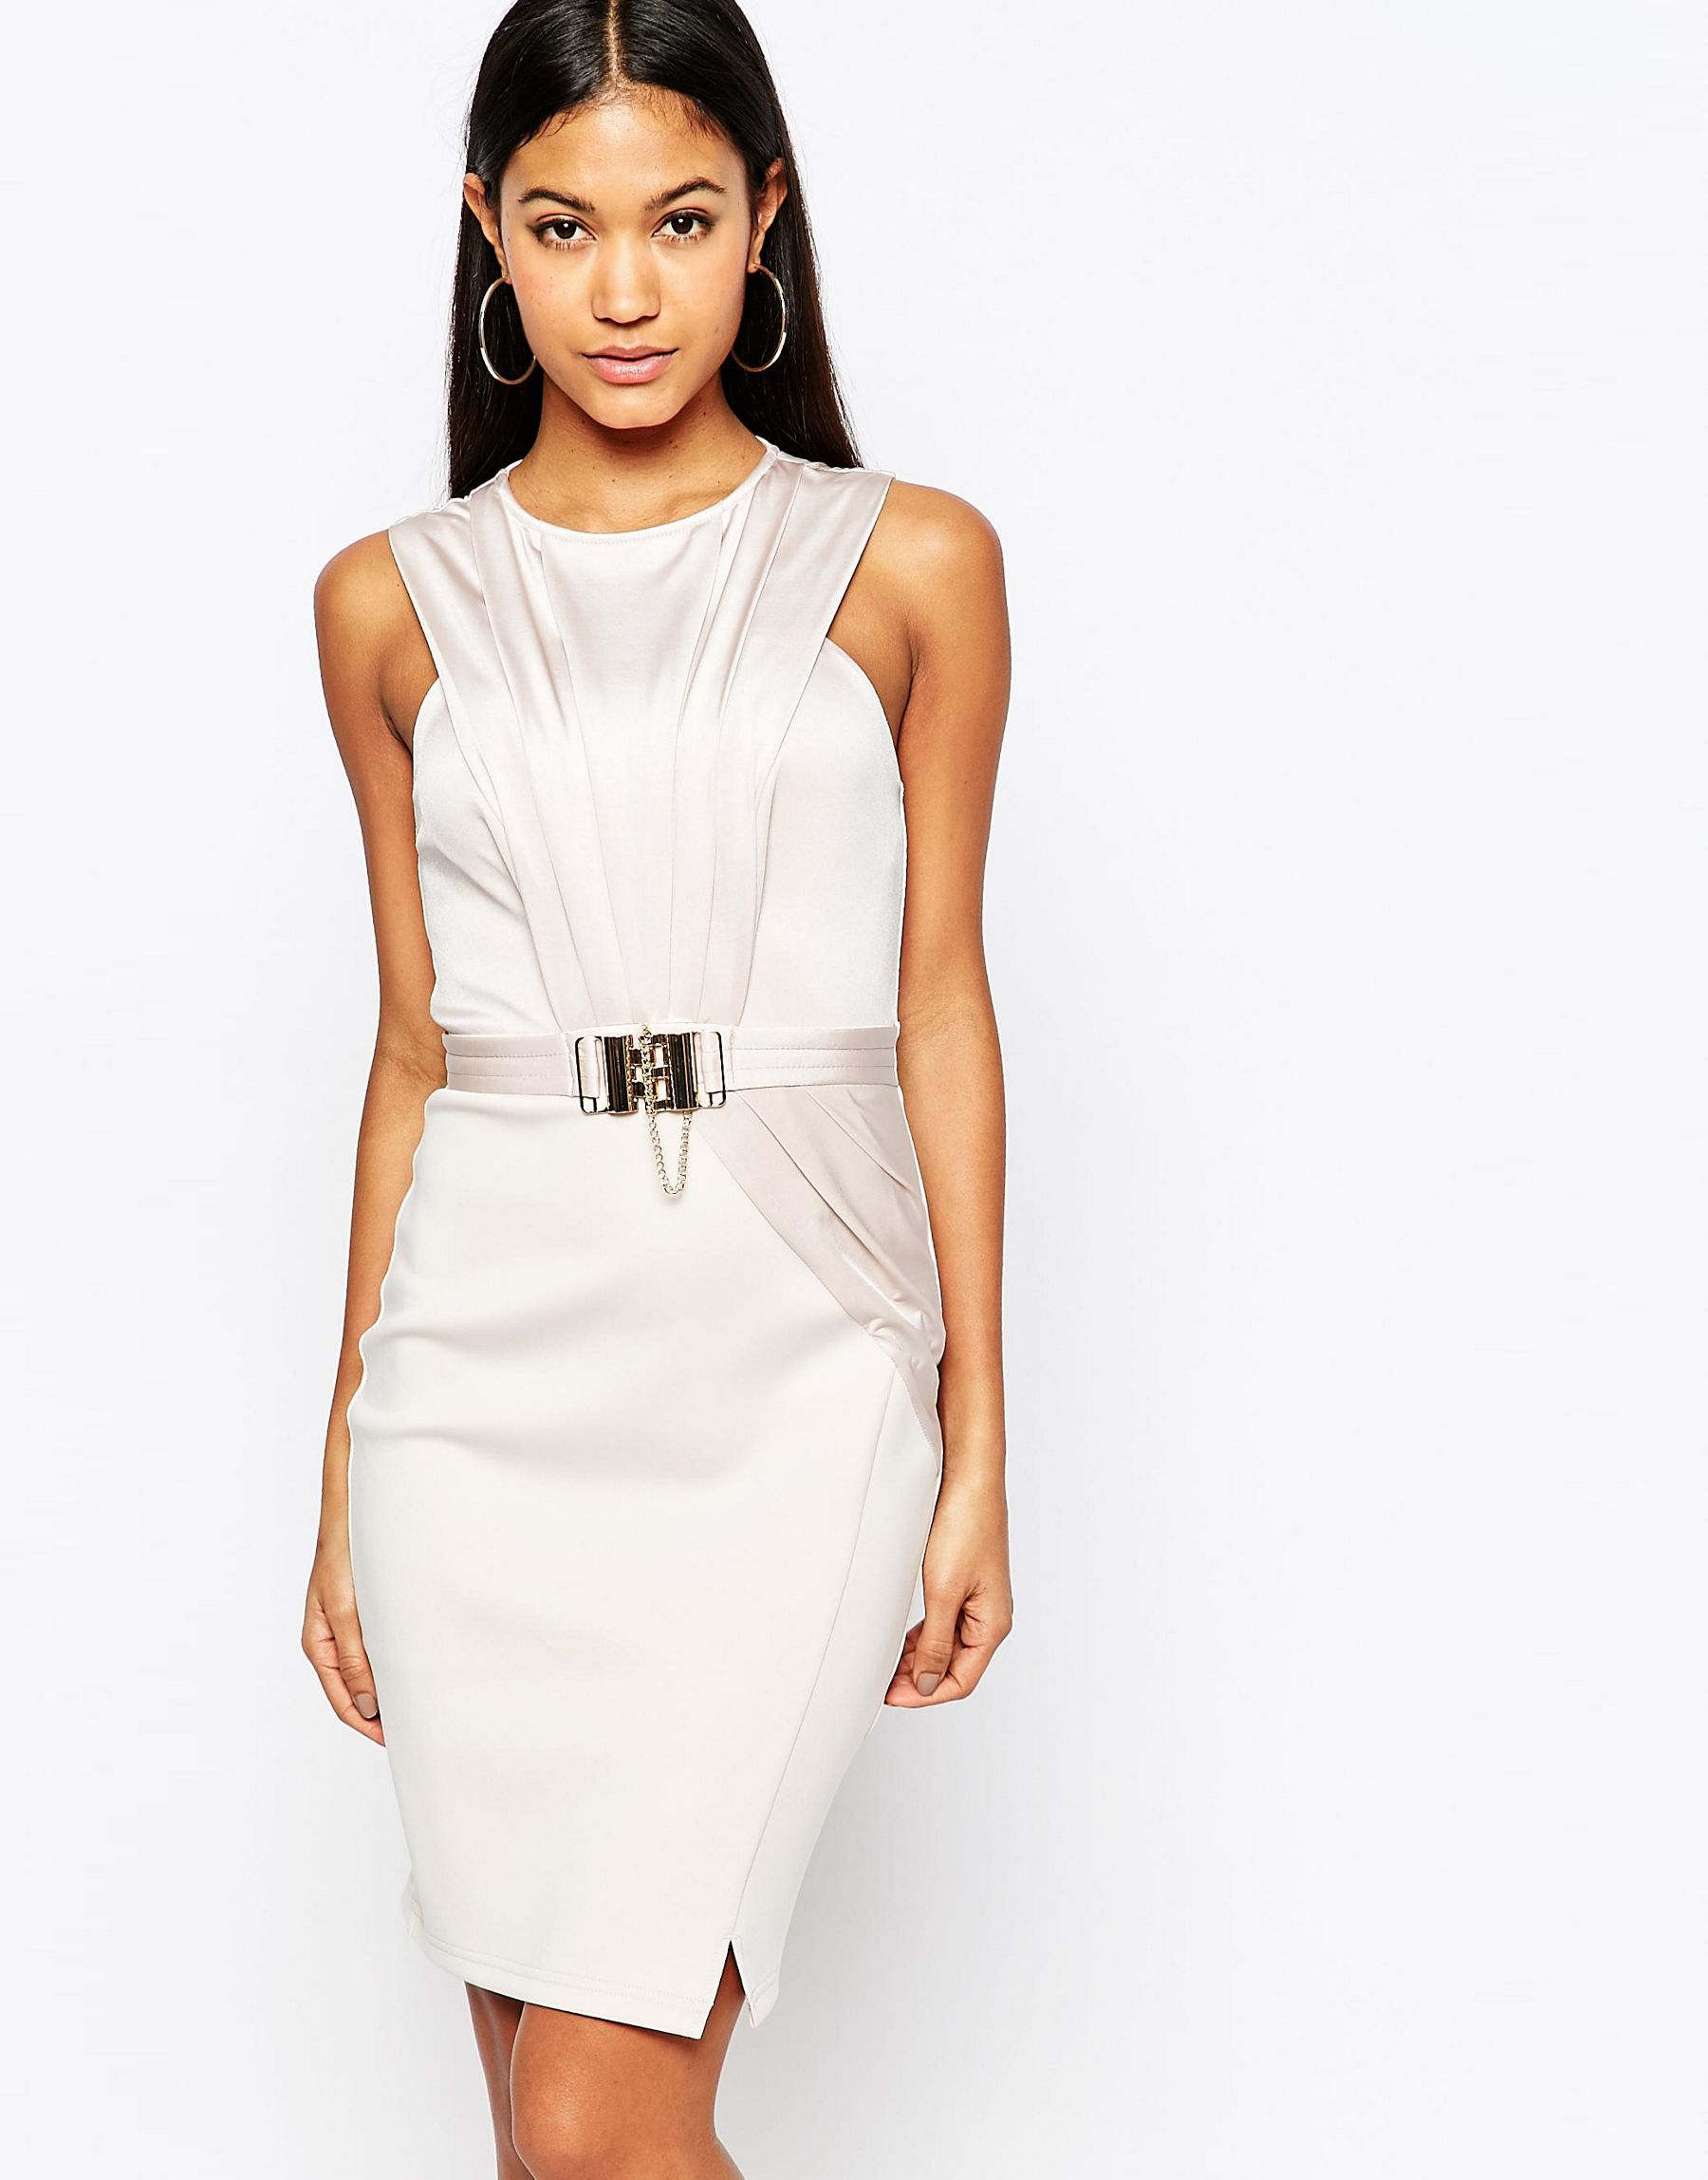 cb15c058c3c98 Lipsy Michelle Keegan Loves Wrap Front Pencil Dress With Chain Belt ...